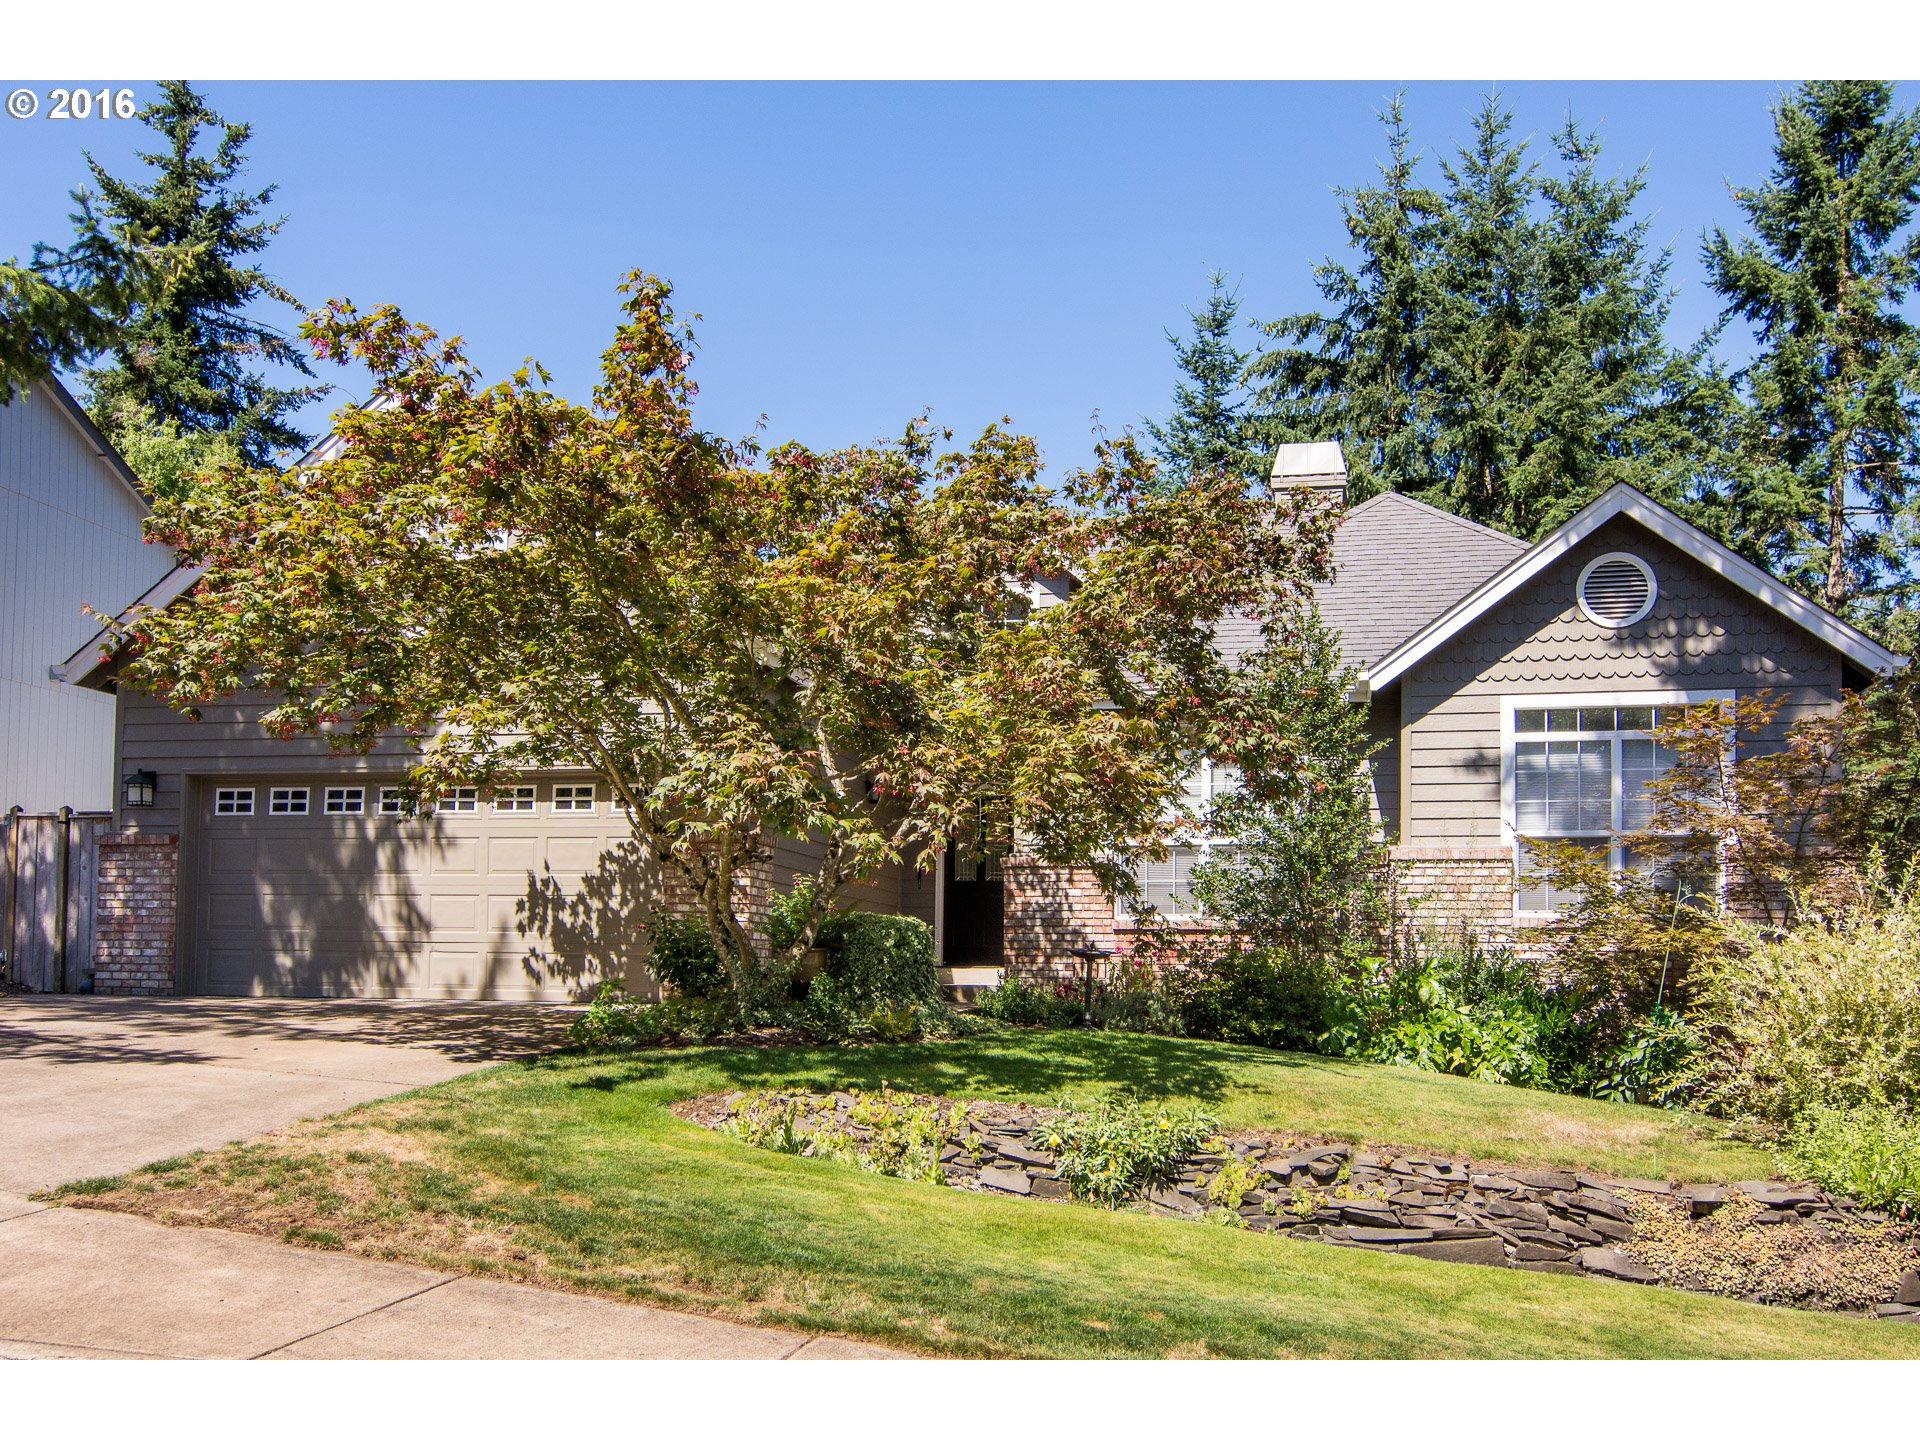 882 S 68TH ST, Springfield OR 97478